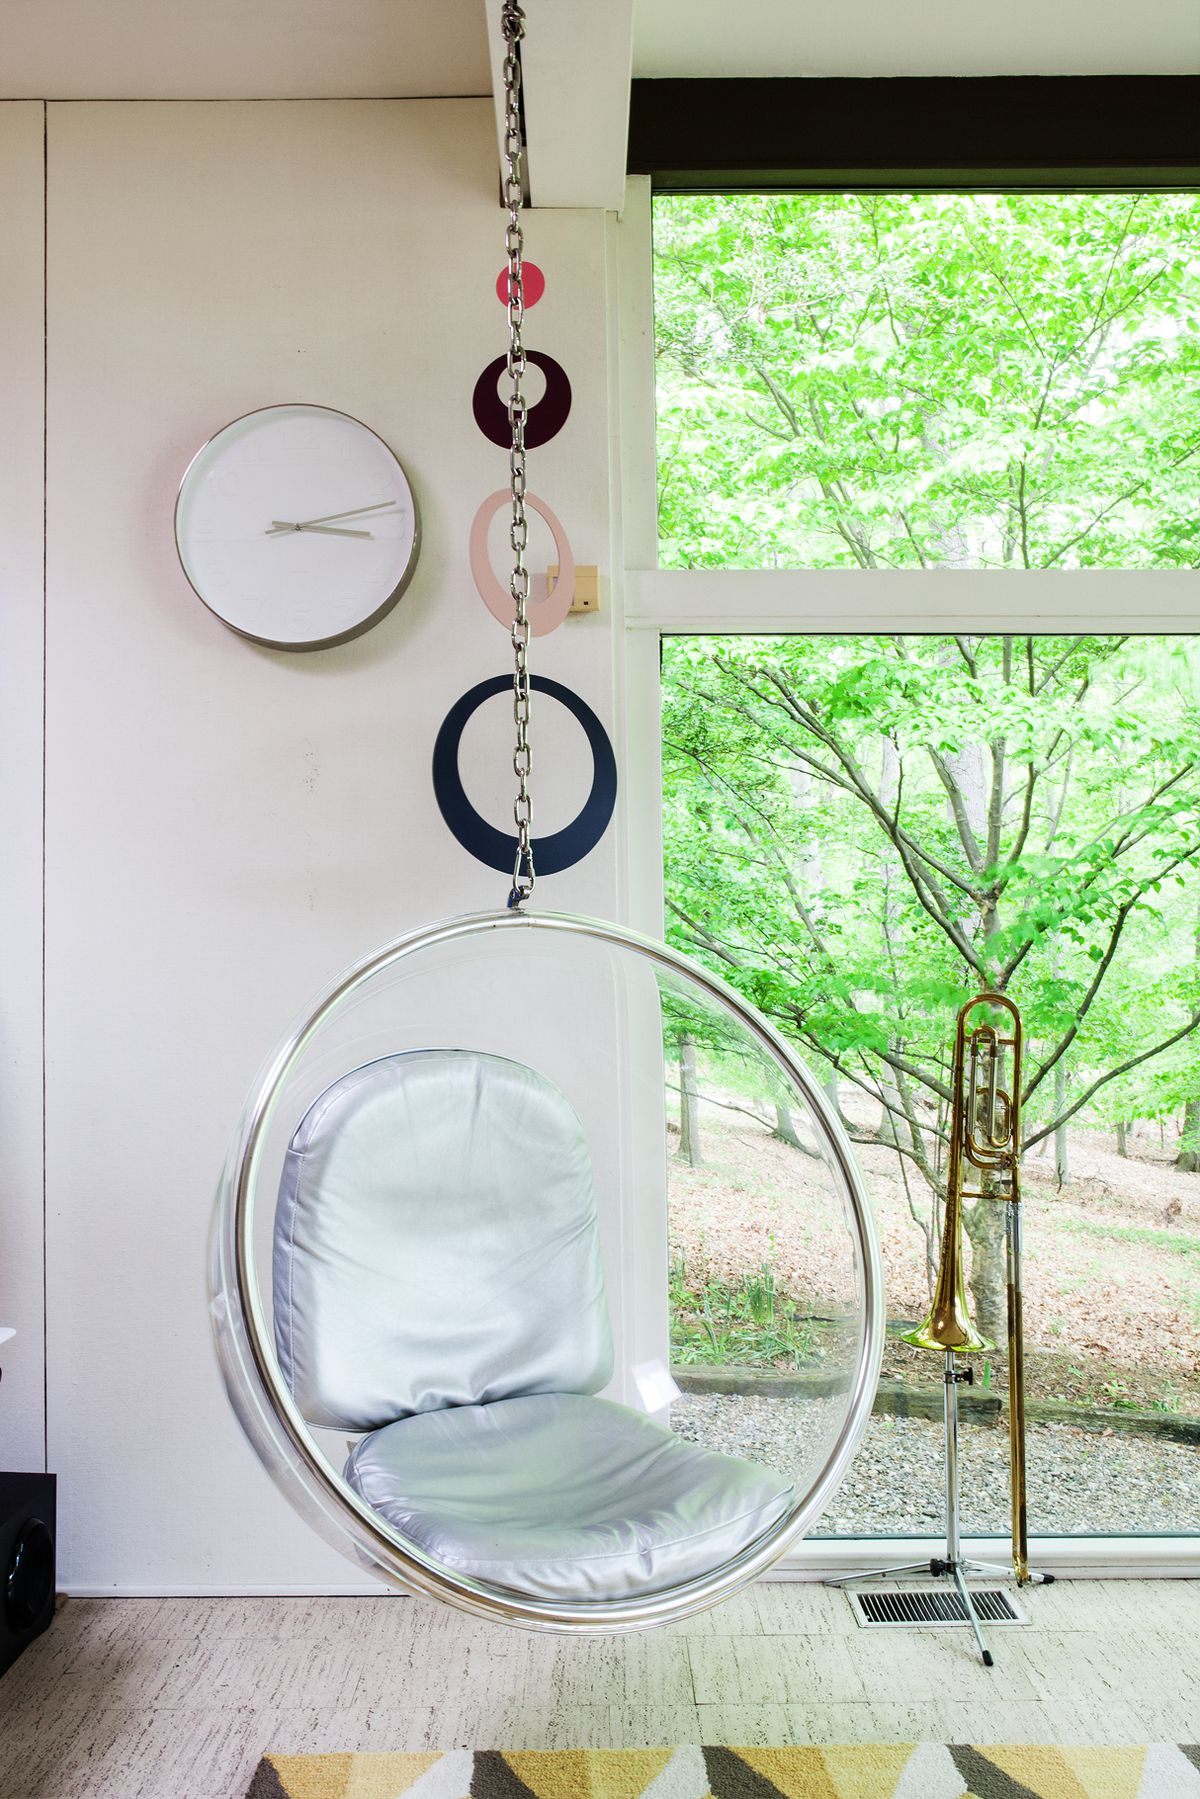 A round, clear-plastic chair with silver cushions hangs in the office.